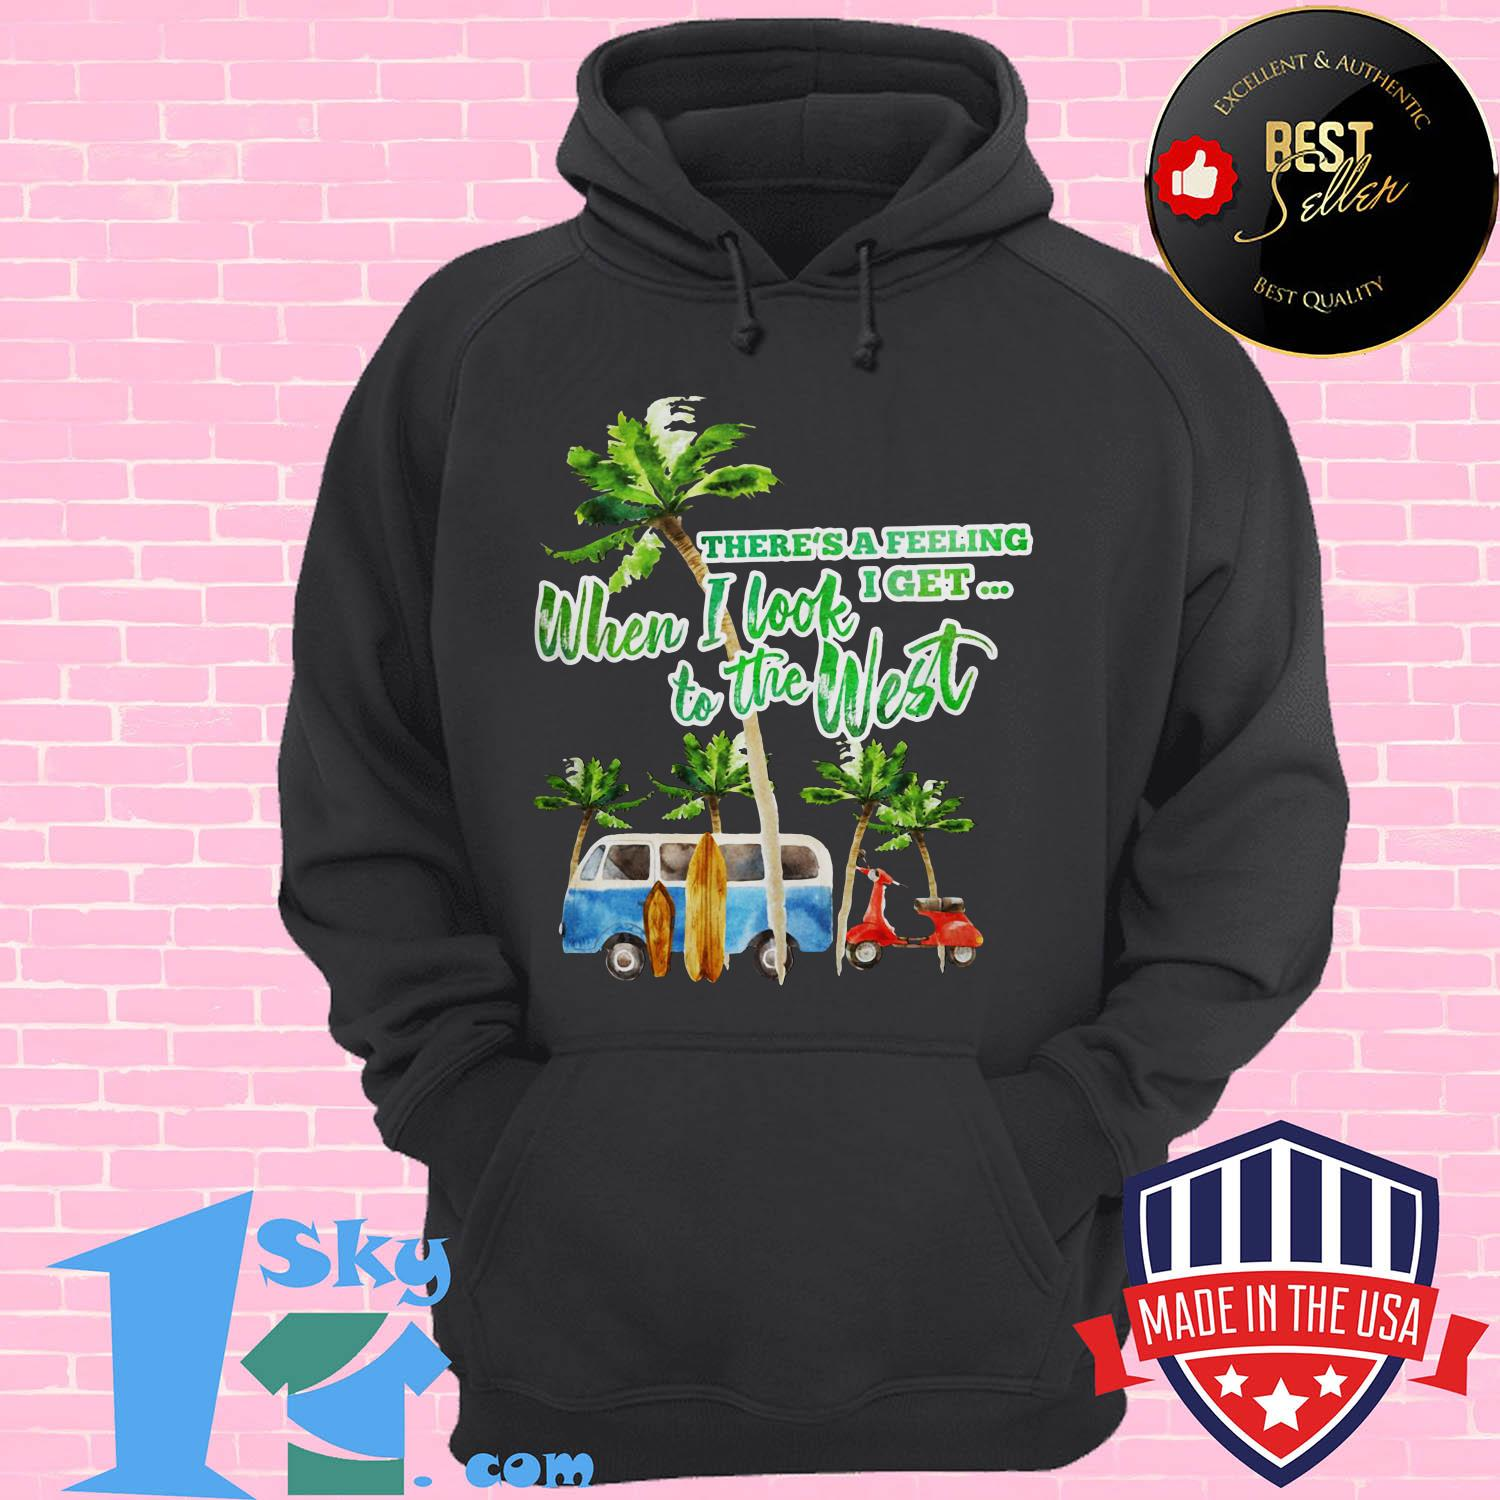 theres a feeling i get when i look to the west coconut tree vintage hoodie - There's a feeling I get when I look to the West Coconut tree Vintage shirt